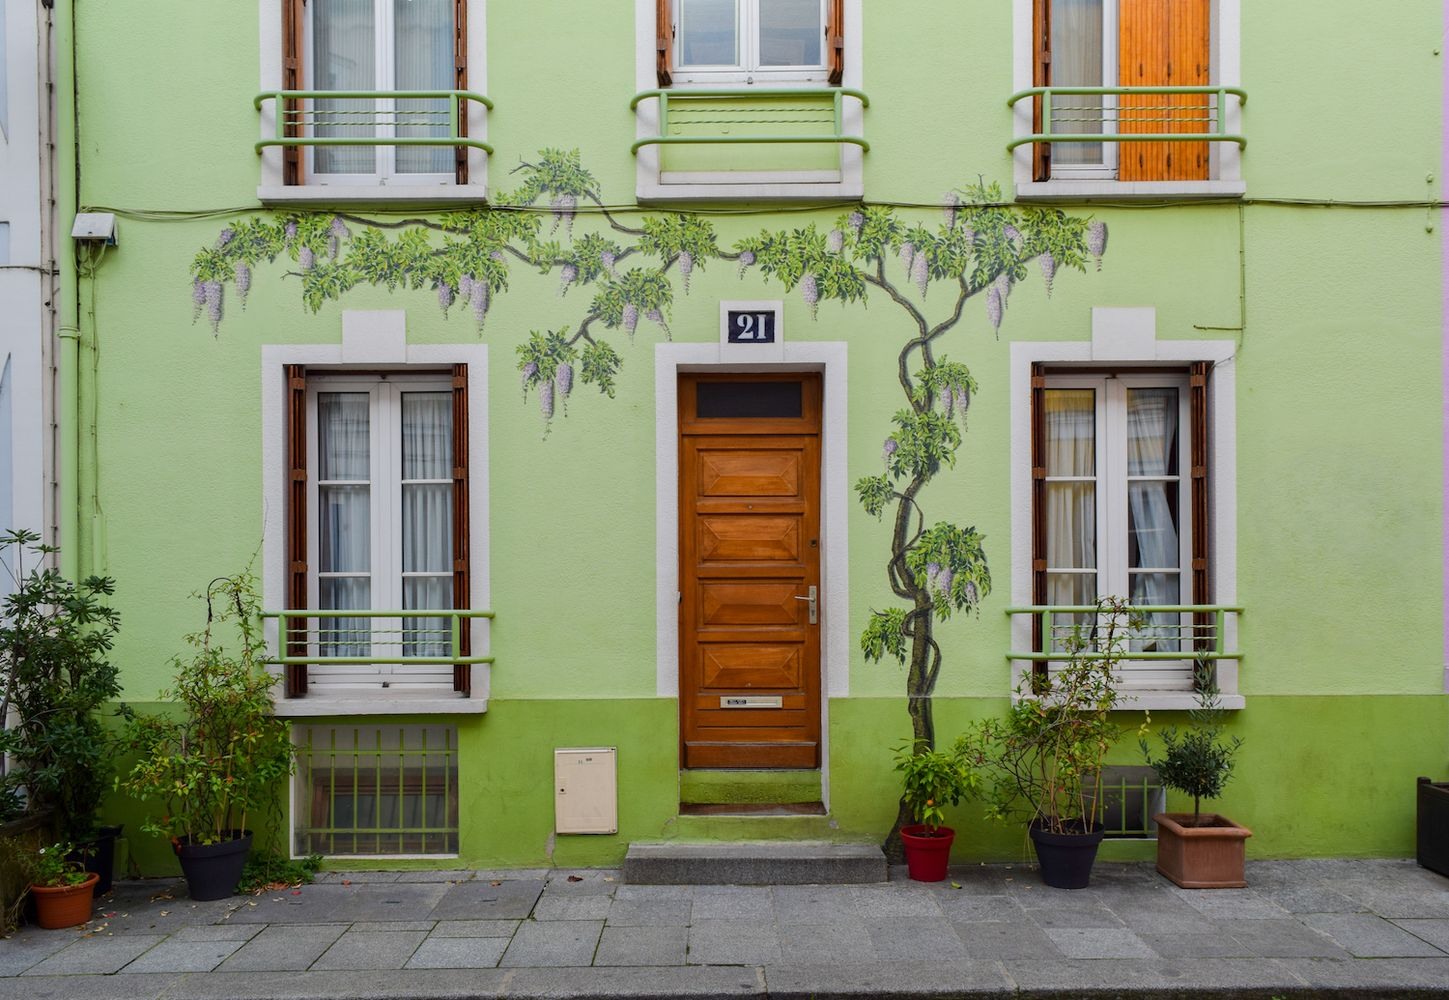 Green House on Rue Cremieux, Paris